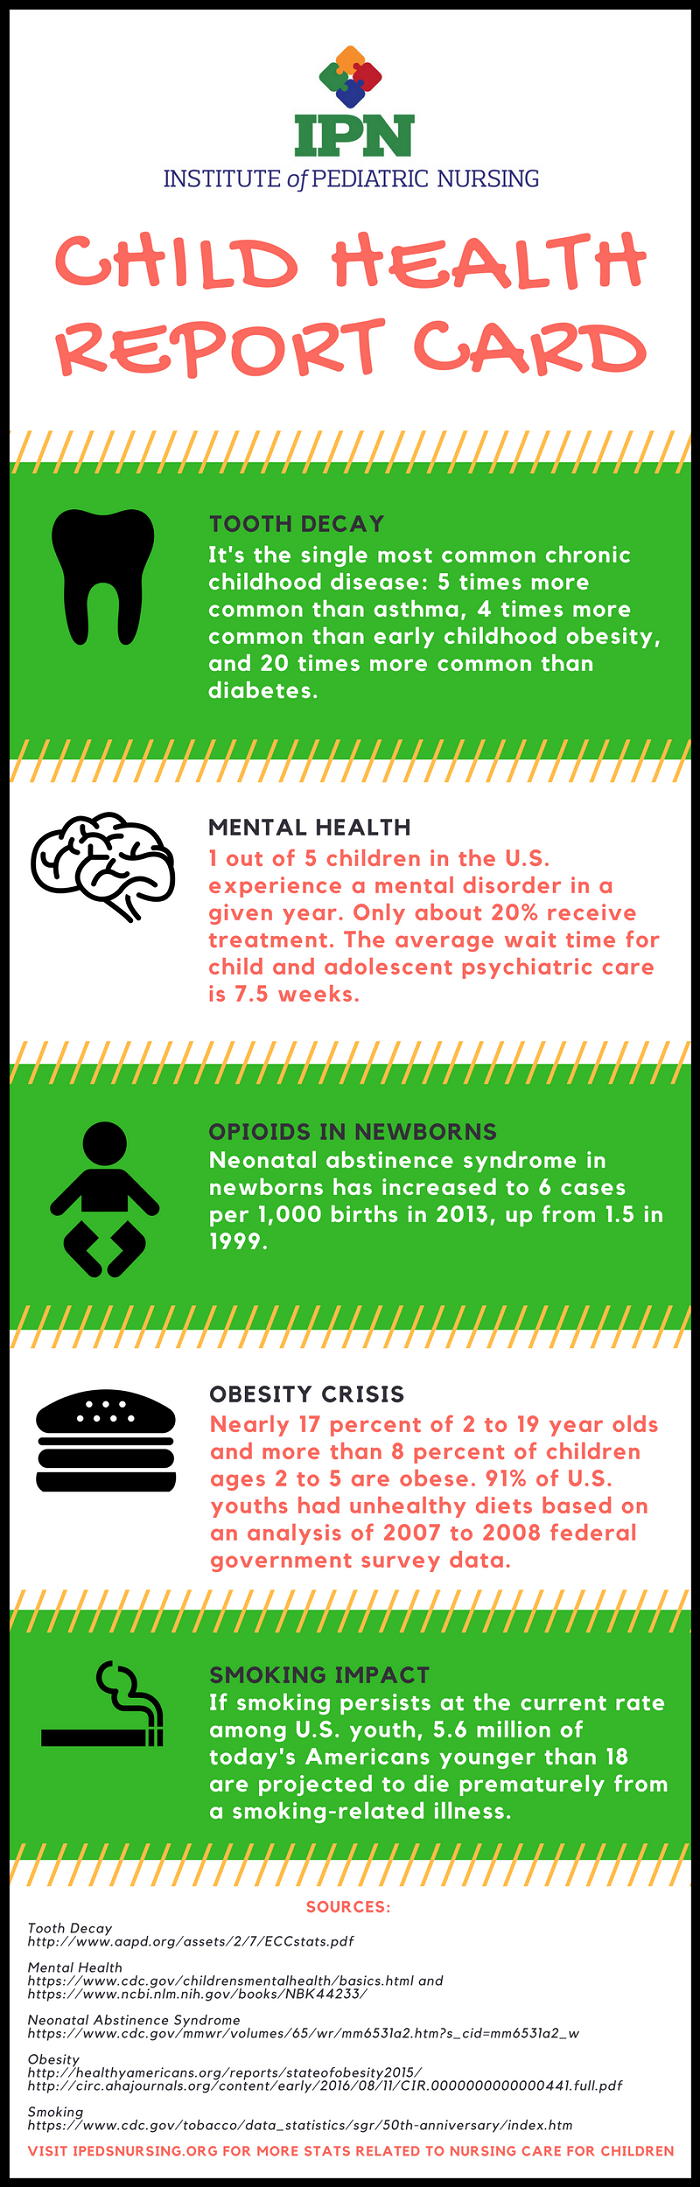 Childrens health: a selection of sites